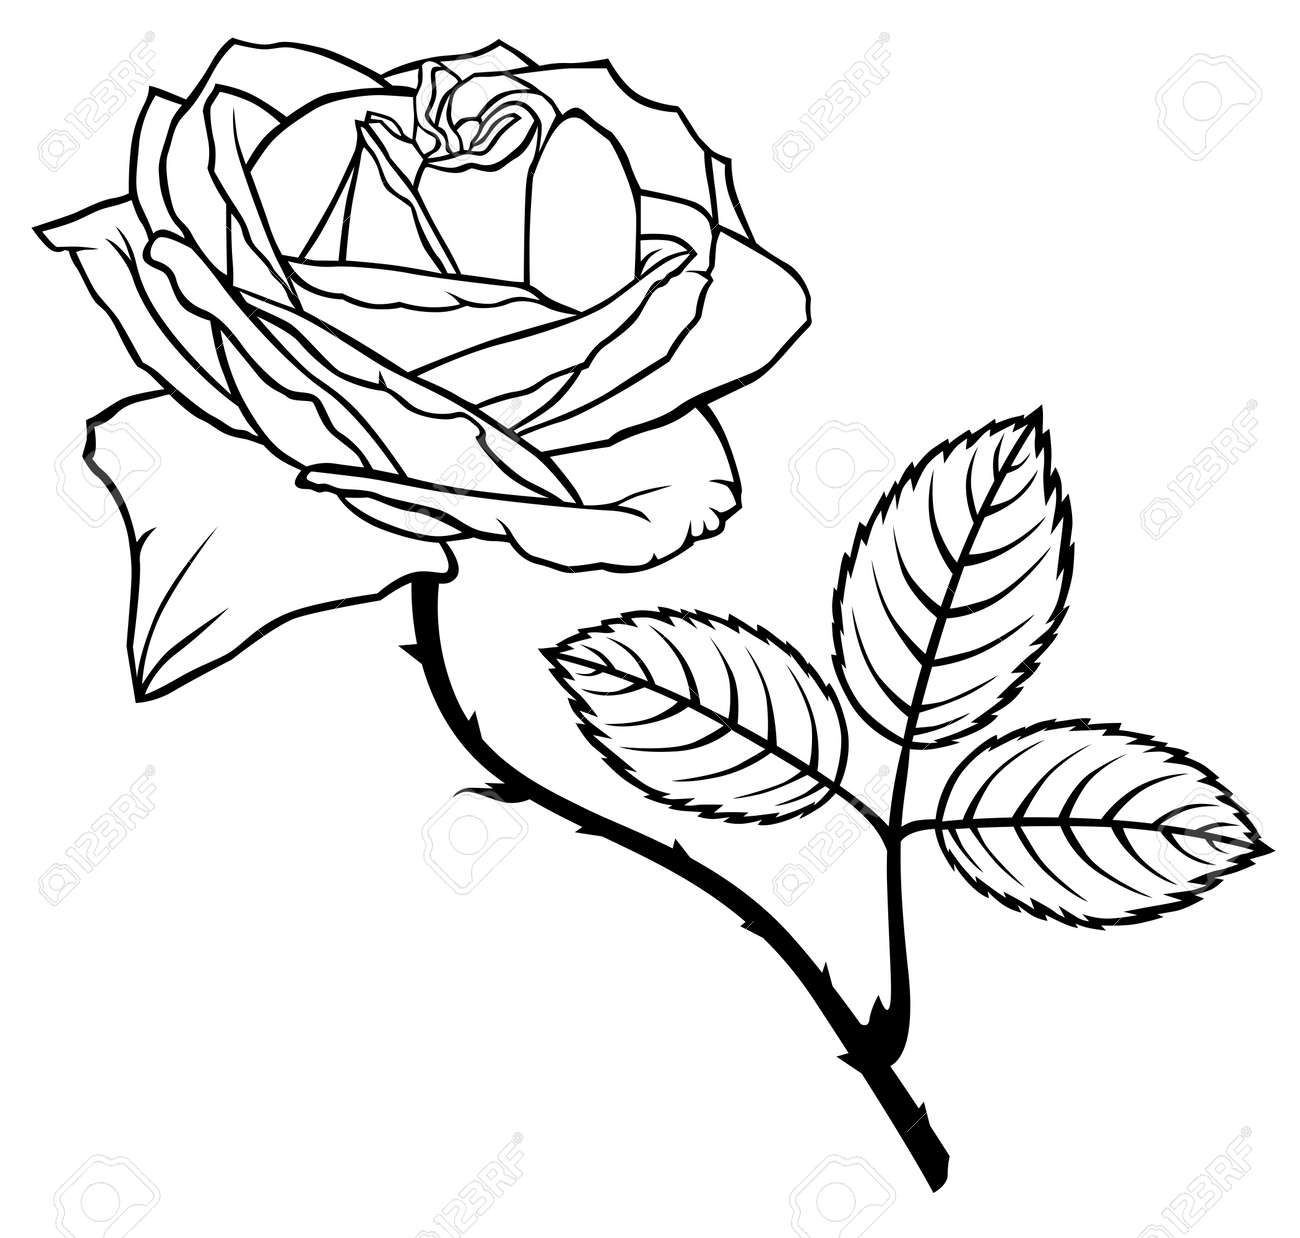 Contour Black And White Image Rose Flower Royalty Free Cliparts